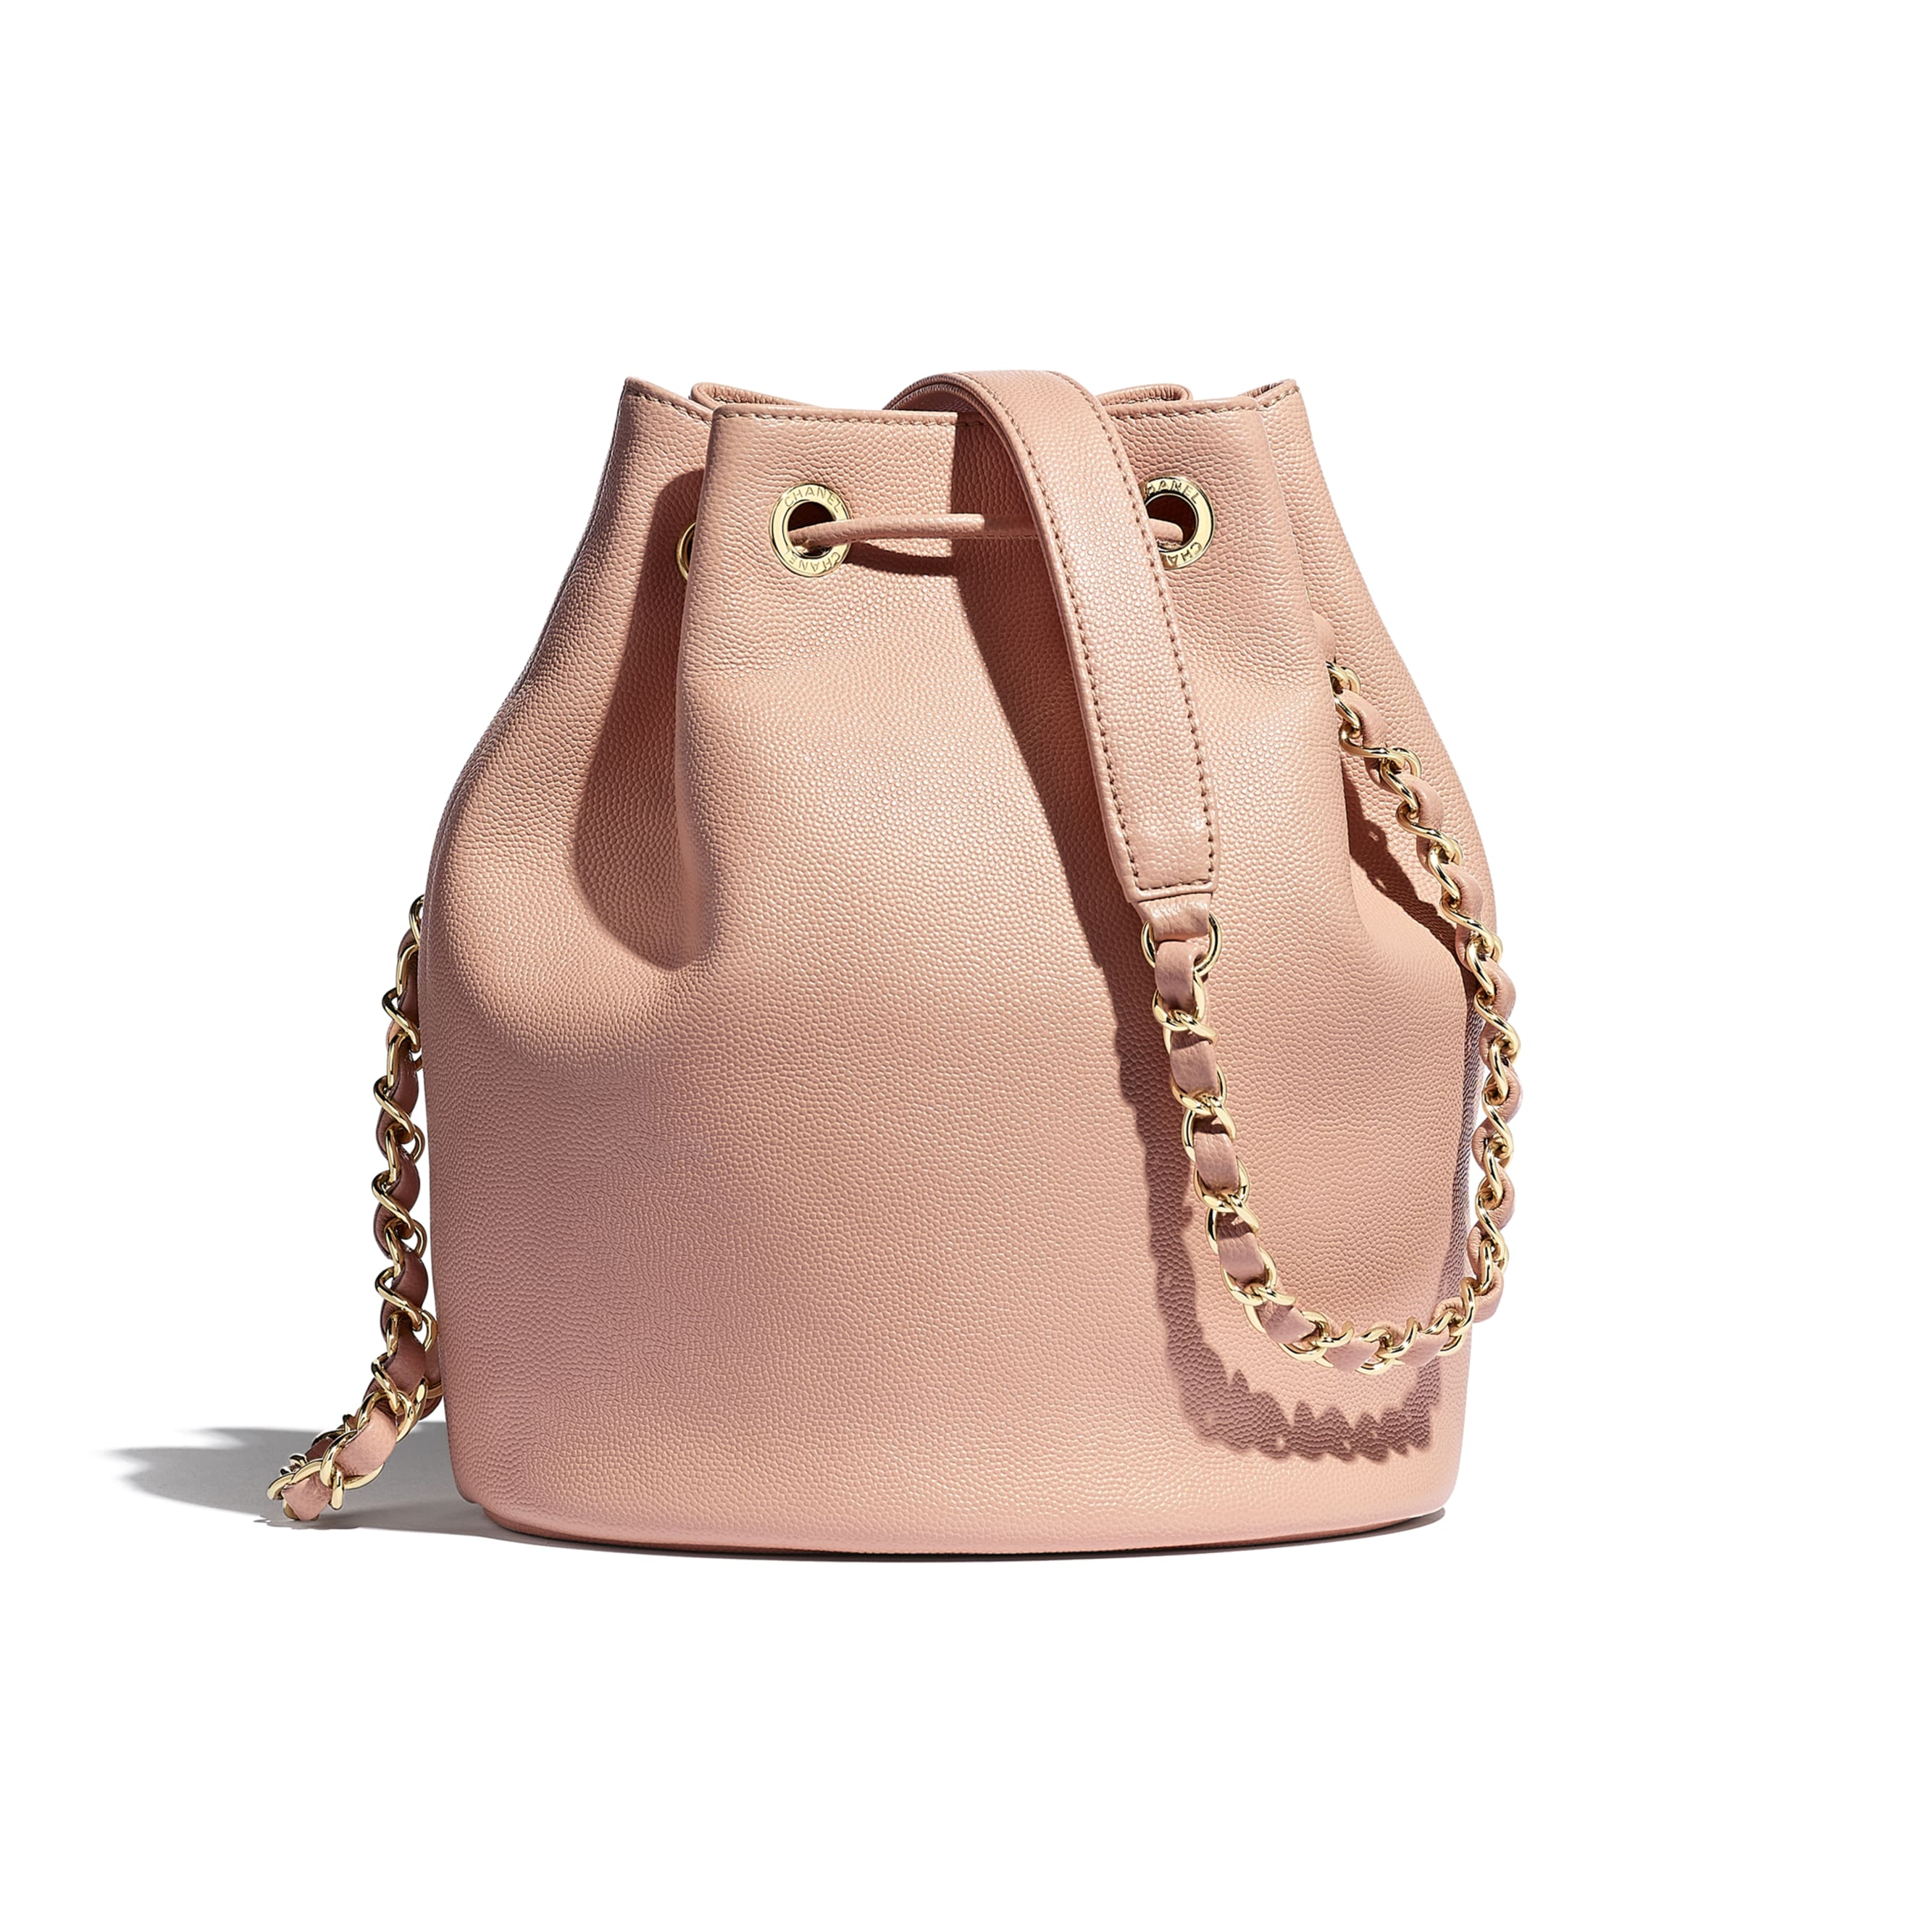 Small Drawstring Bag - Light Pink - Grained Calfskin, Studs & Gold-Tone Metal - CHANEL - Alternative view - see standard sized version